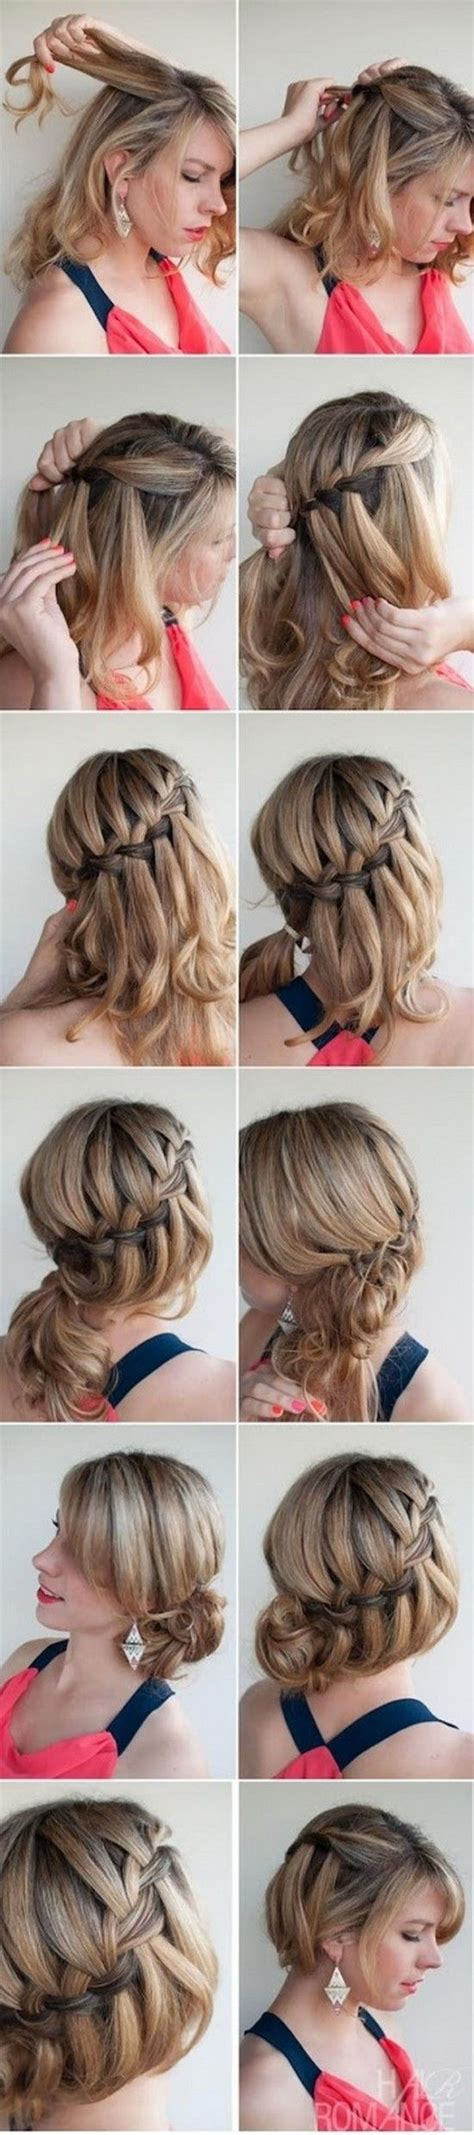 waterfall braid bun 28 diy hairstyles 17 best images about hairstyles on pinterest braids